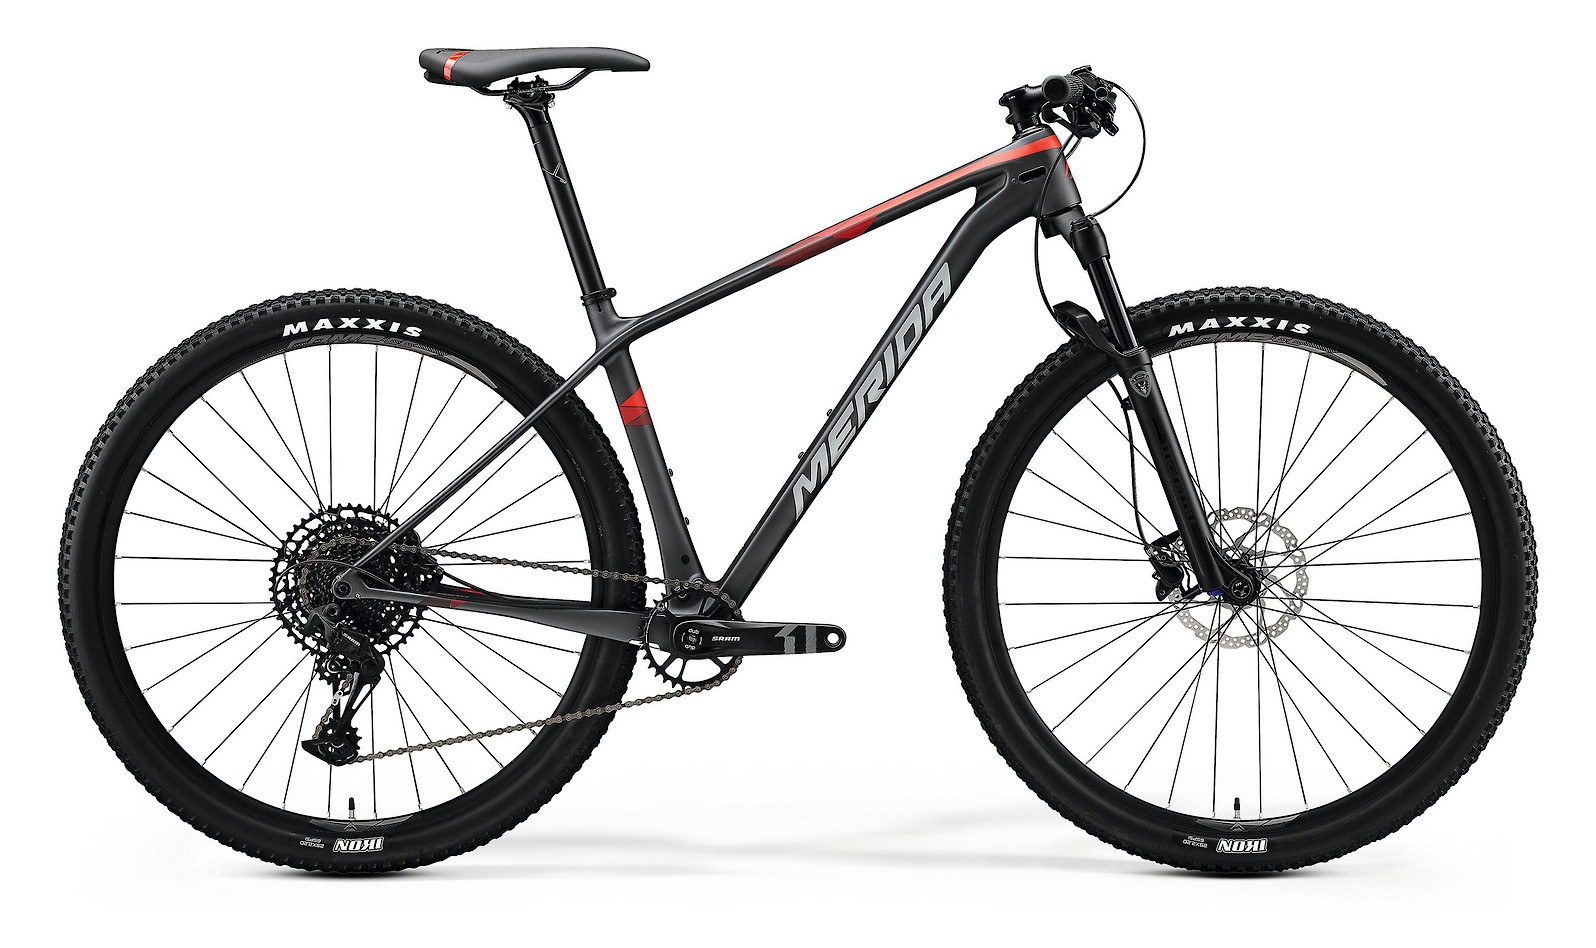 2020 Merida Big Nine 3000 Bike Reviews Comparisons Specs Mountain Bikes Vital Mtb